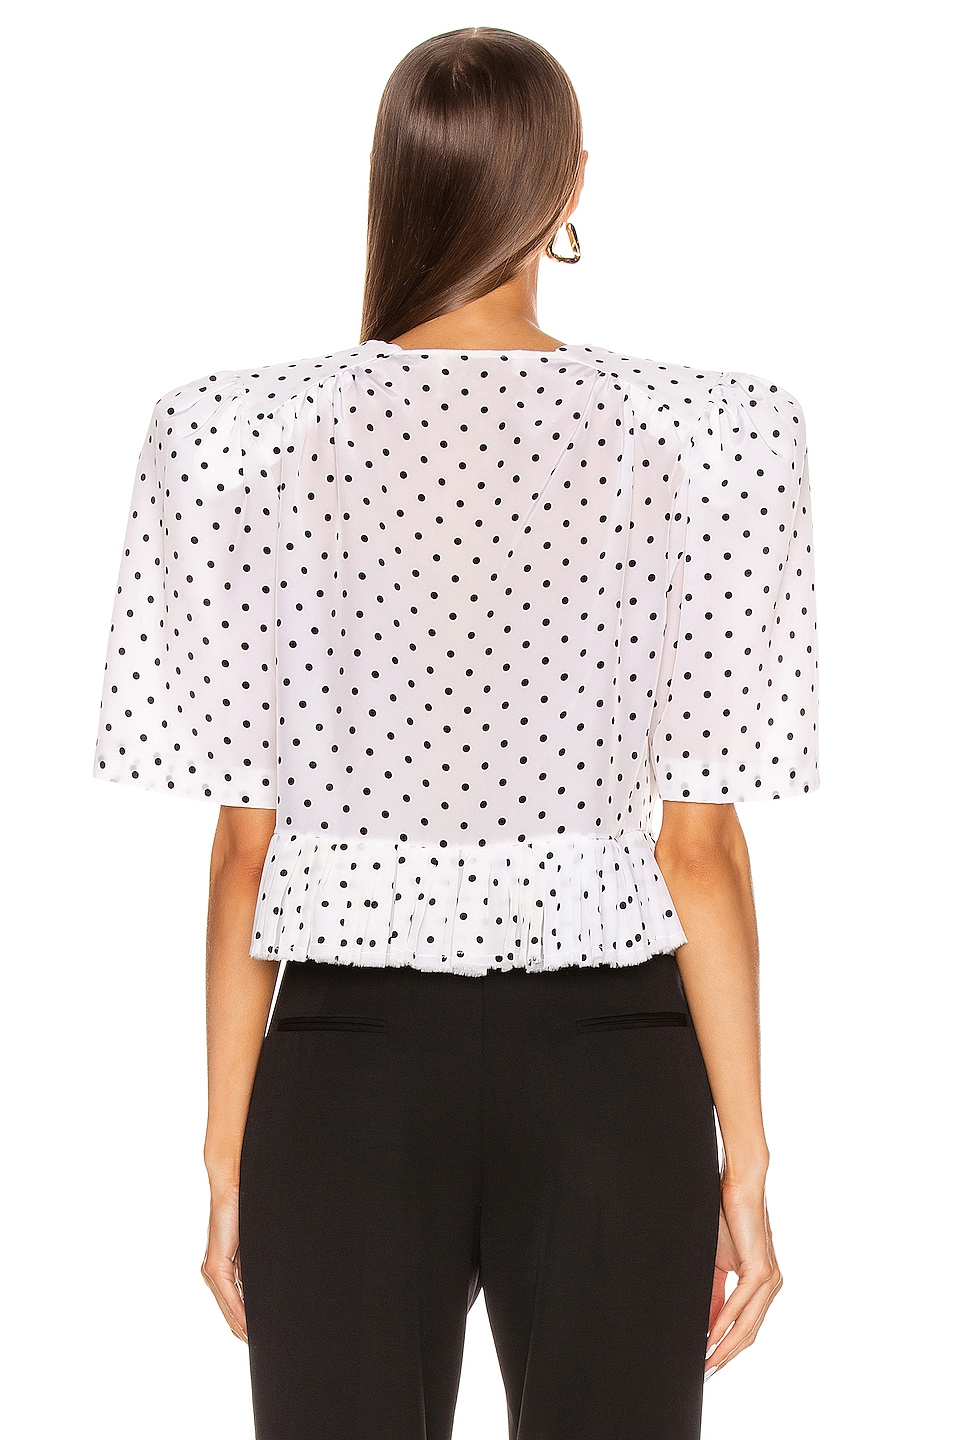 Image 3 of Daniele Carlotta V Neck Blouse in Polka Dots